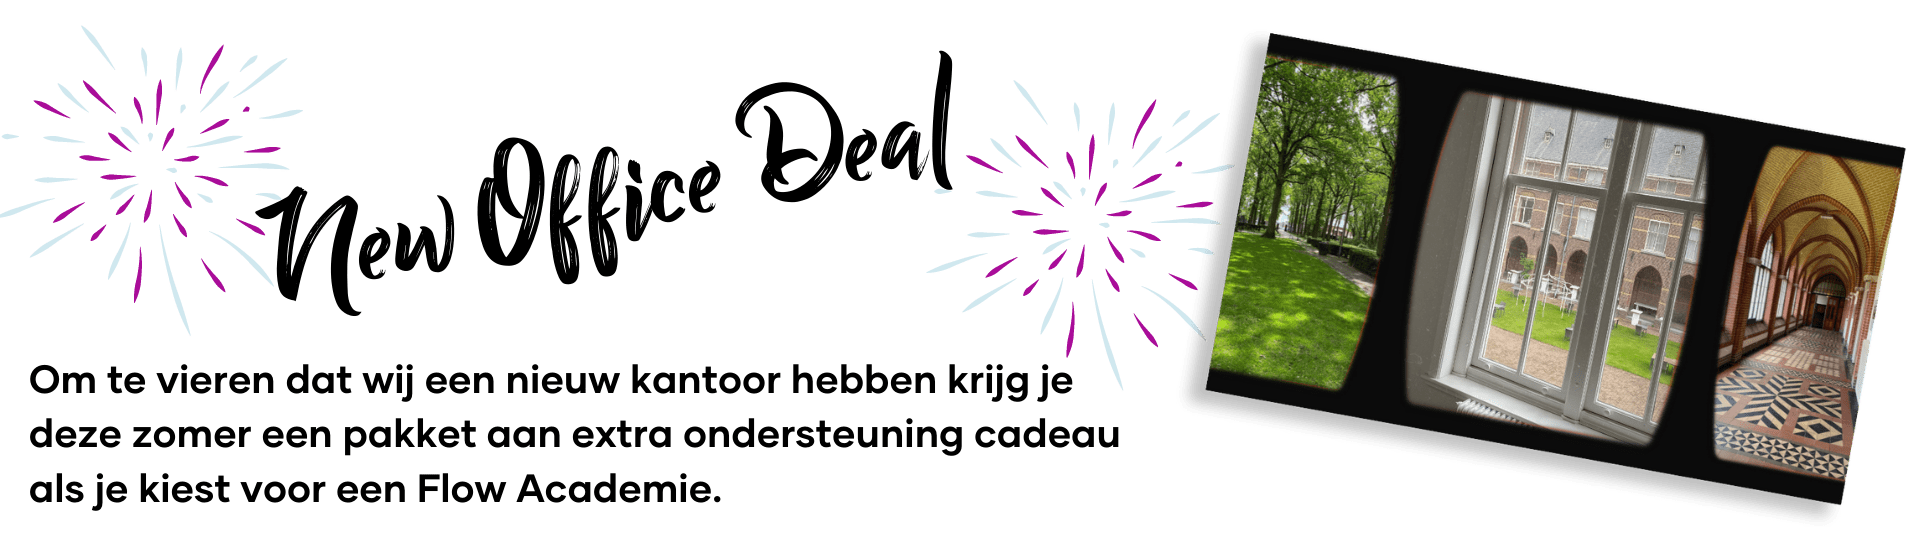 New_Office_Deal